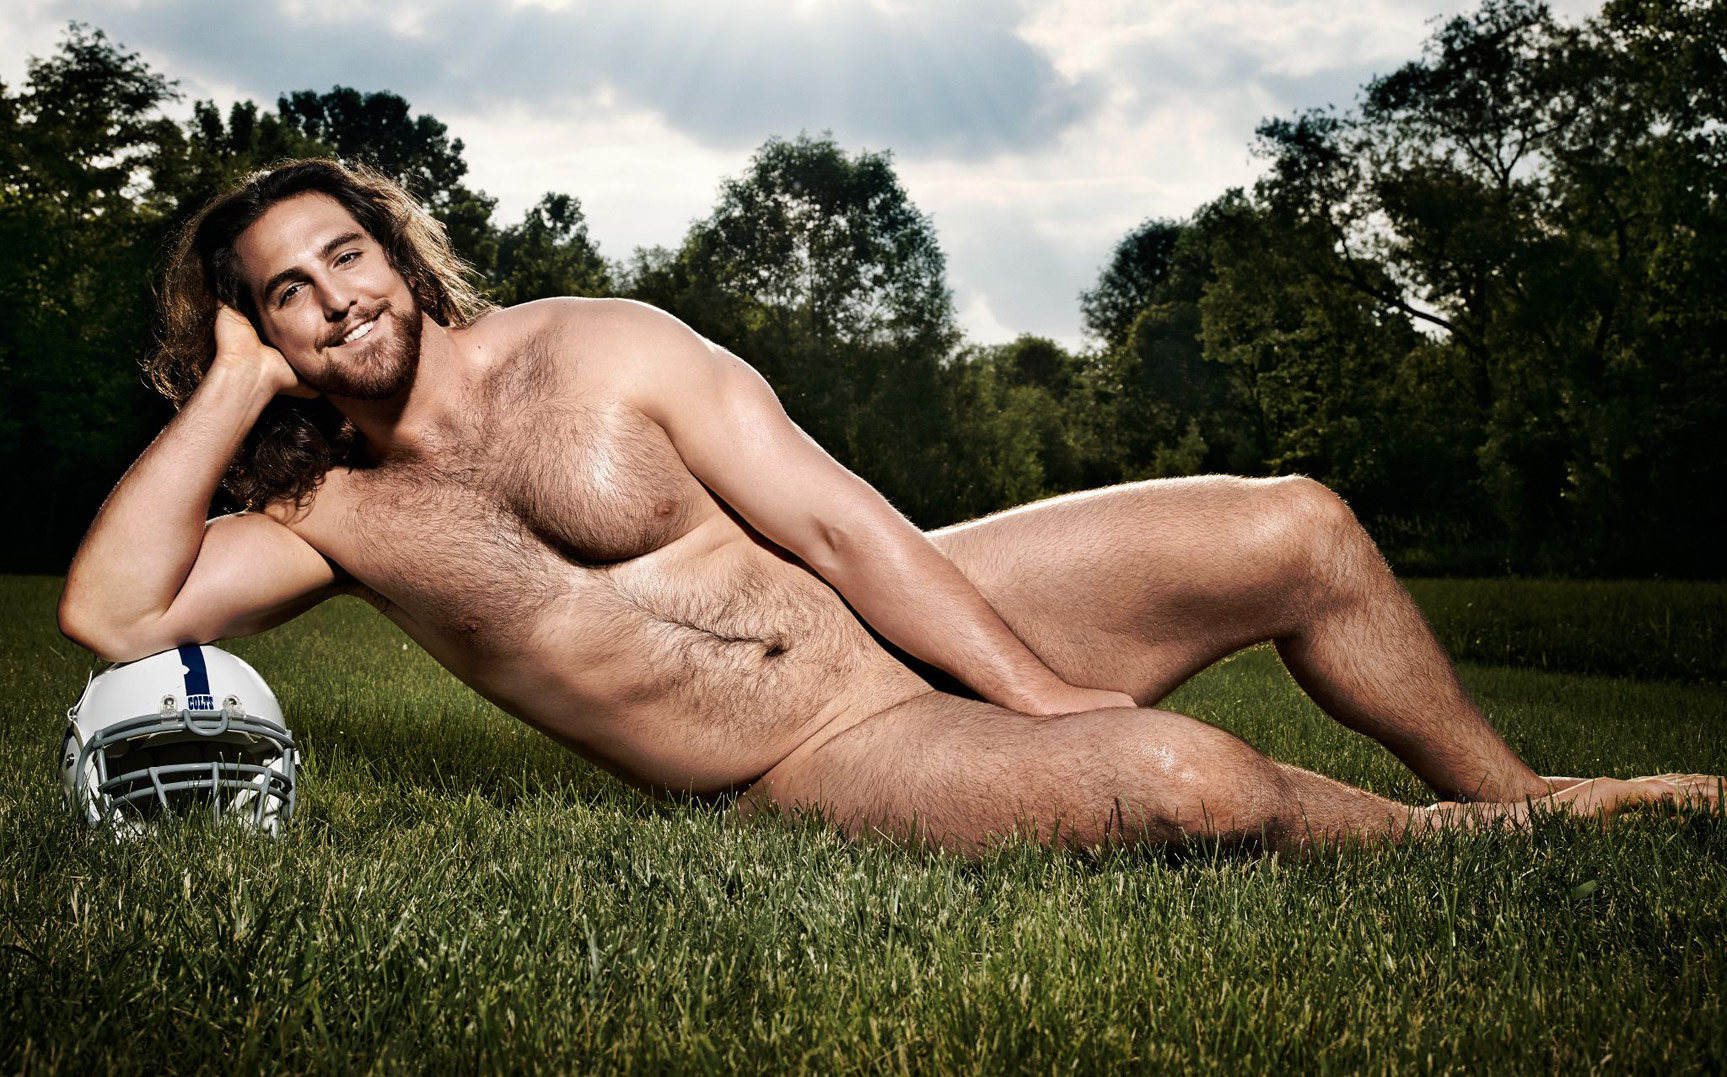 ESPN Magazine The Body Issue 2015 - Indianapolis Colts offensive line - Культ тела журнала ESPN